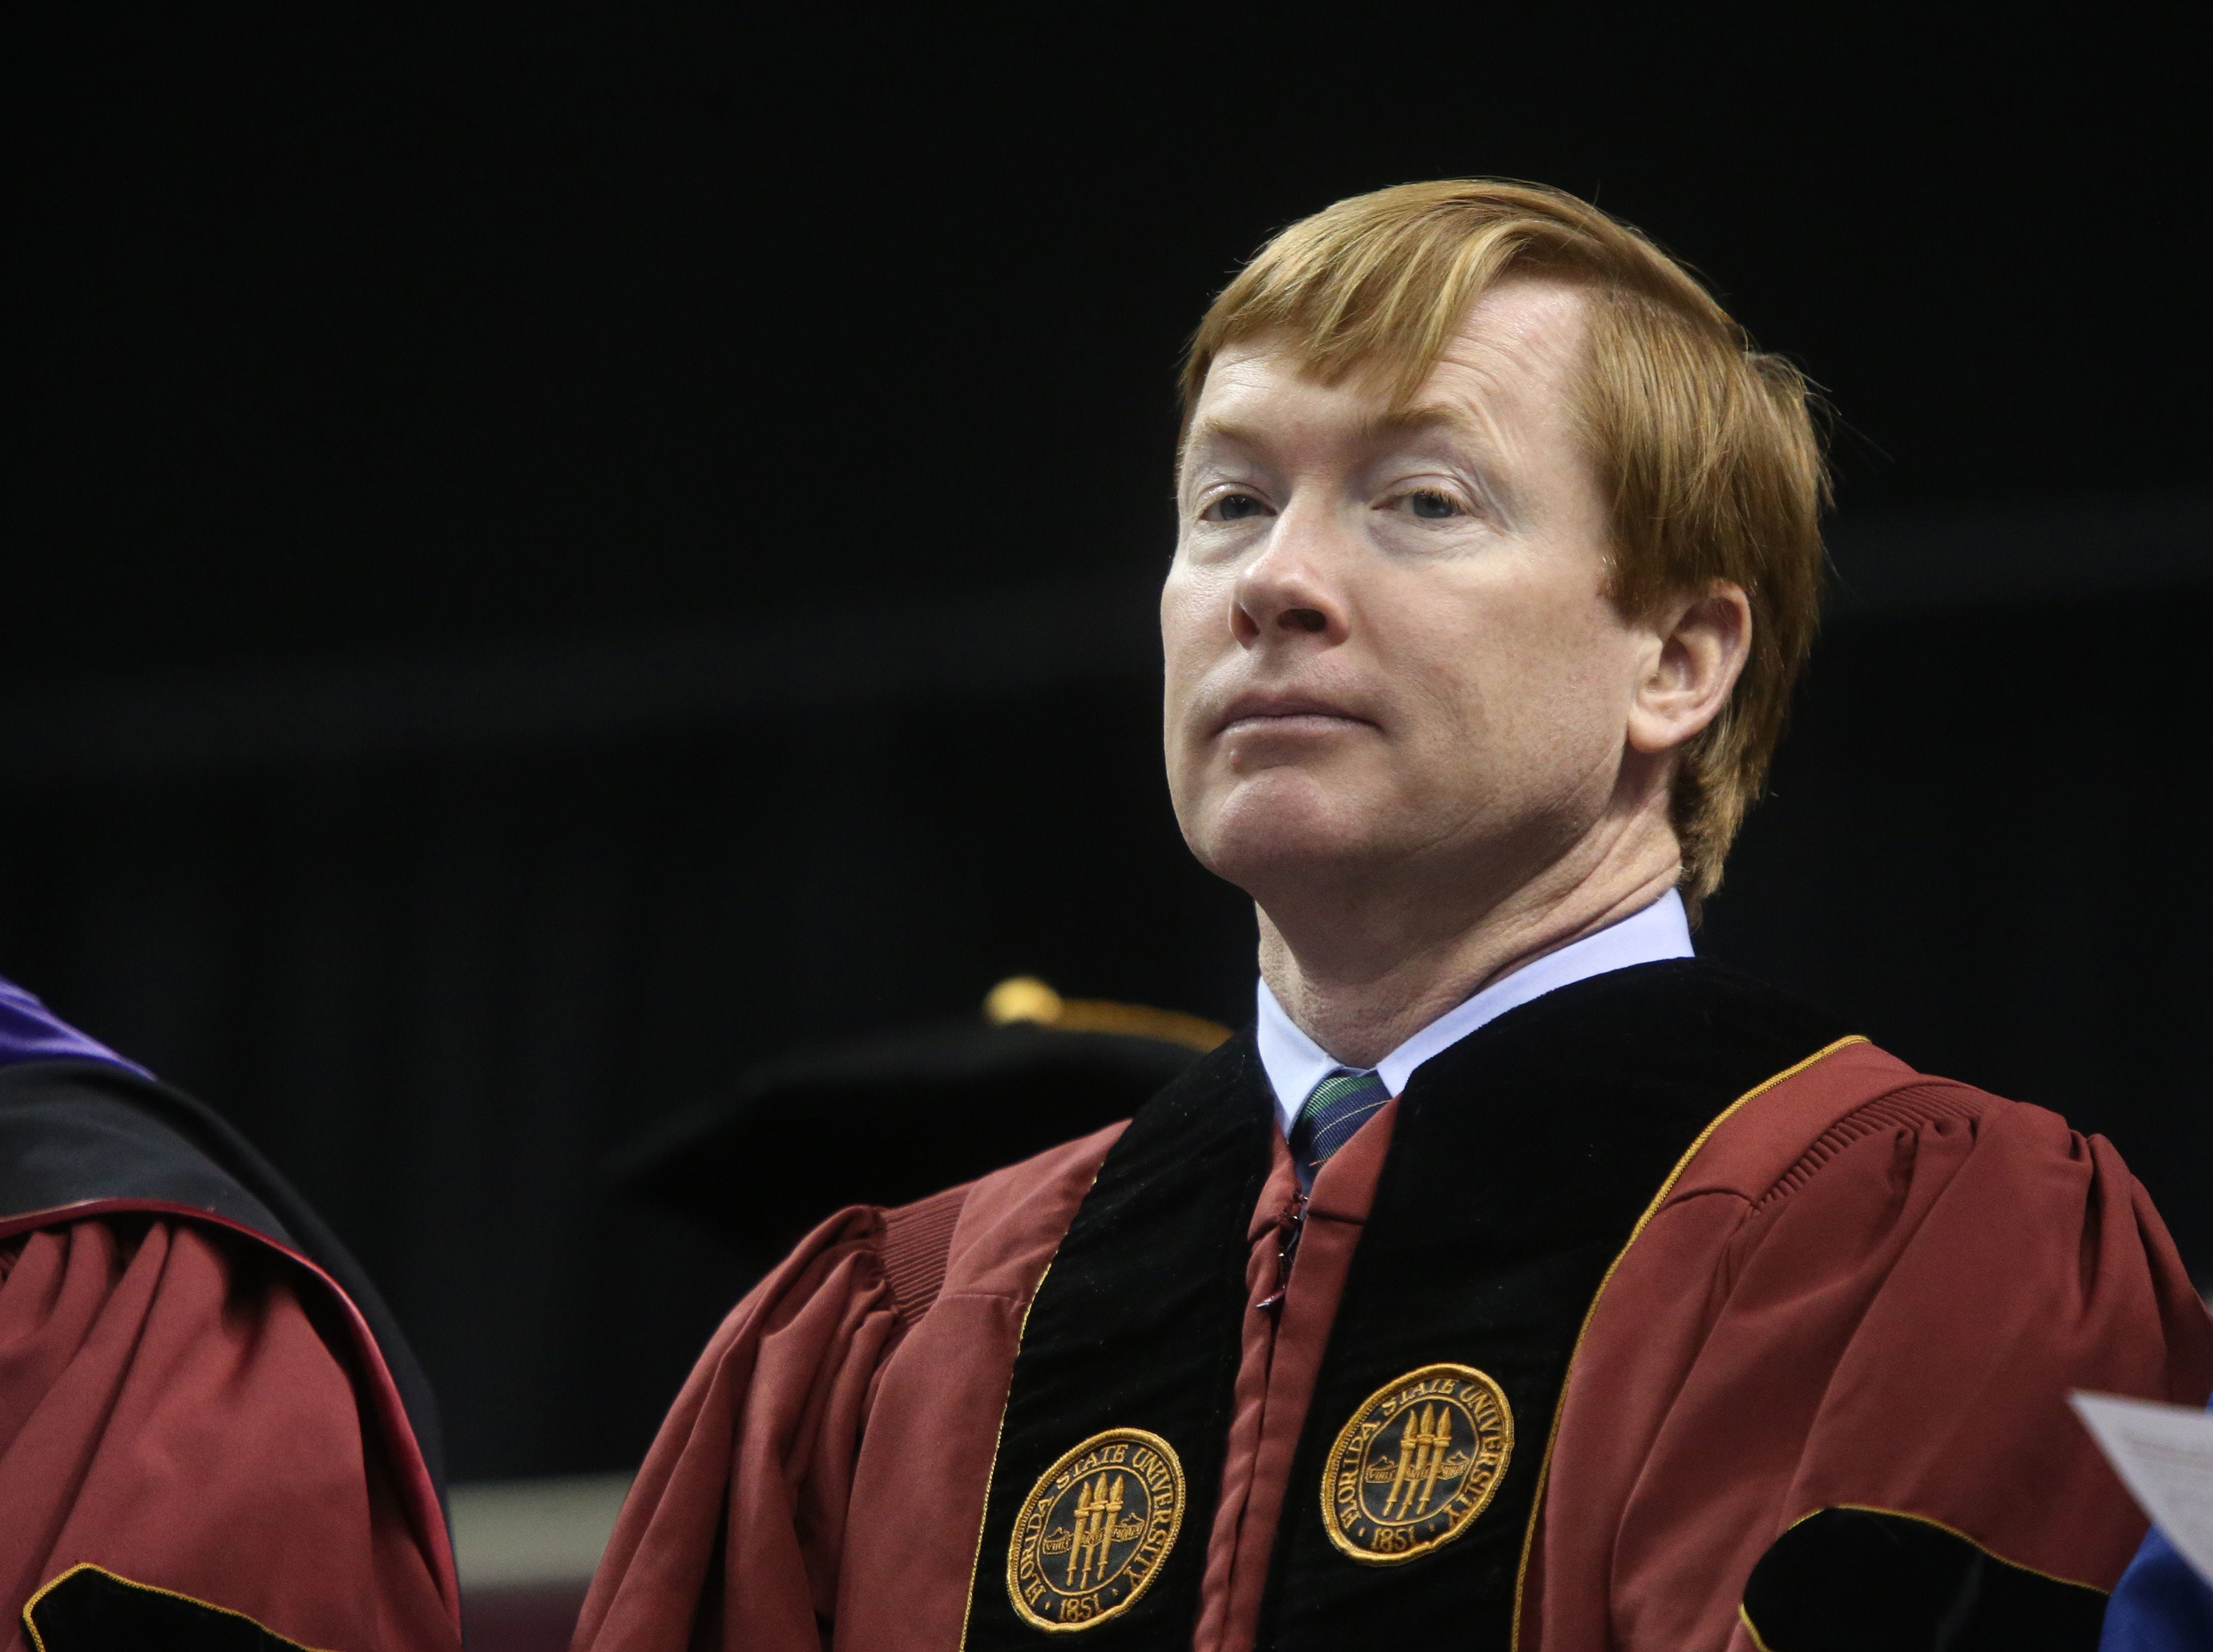 Florida Department of Agriculture Commissioner Adam Putnam delivered the convocation address at Florida State's New Student Convocation Ceremony.